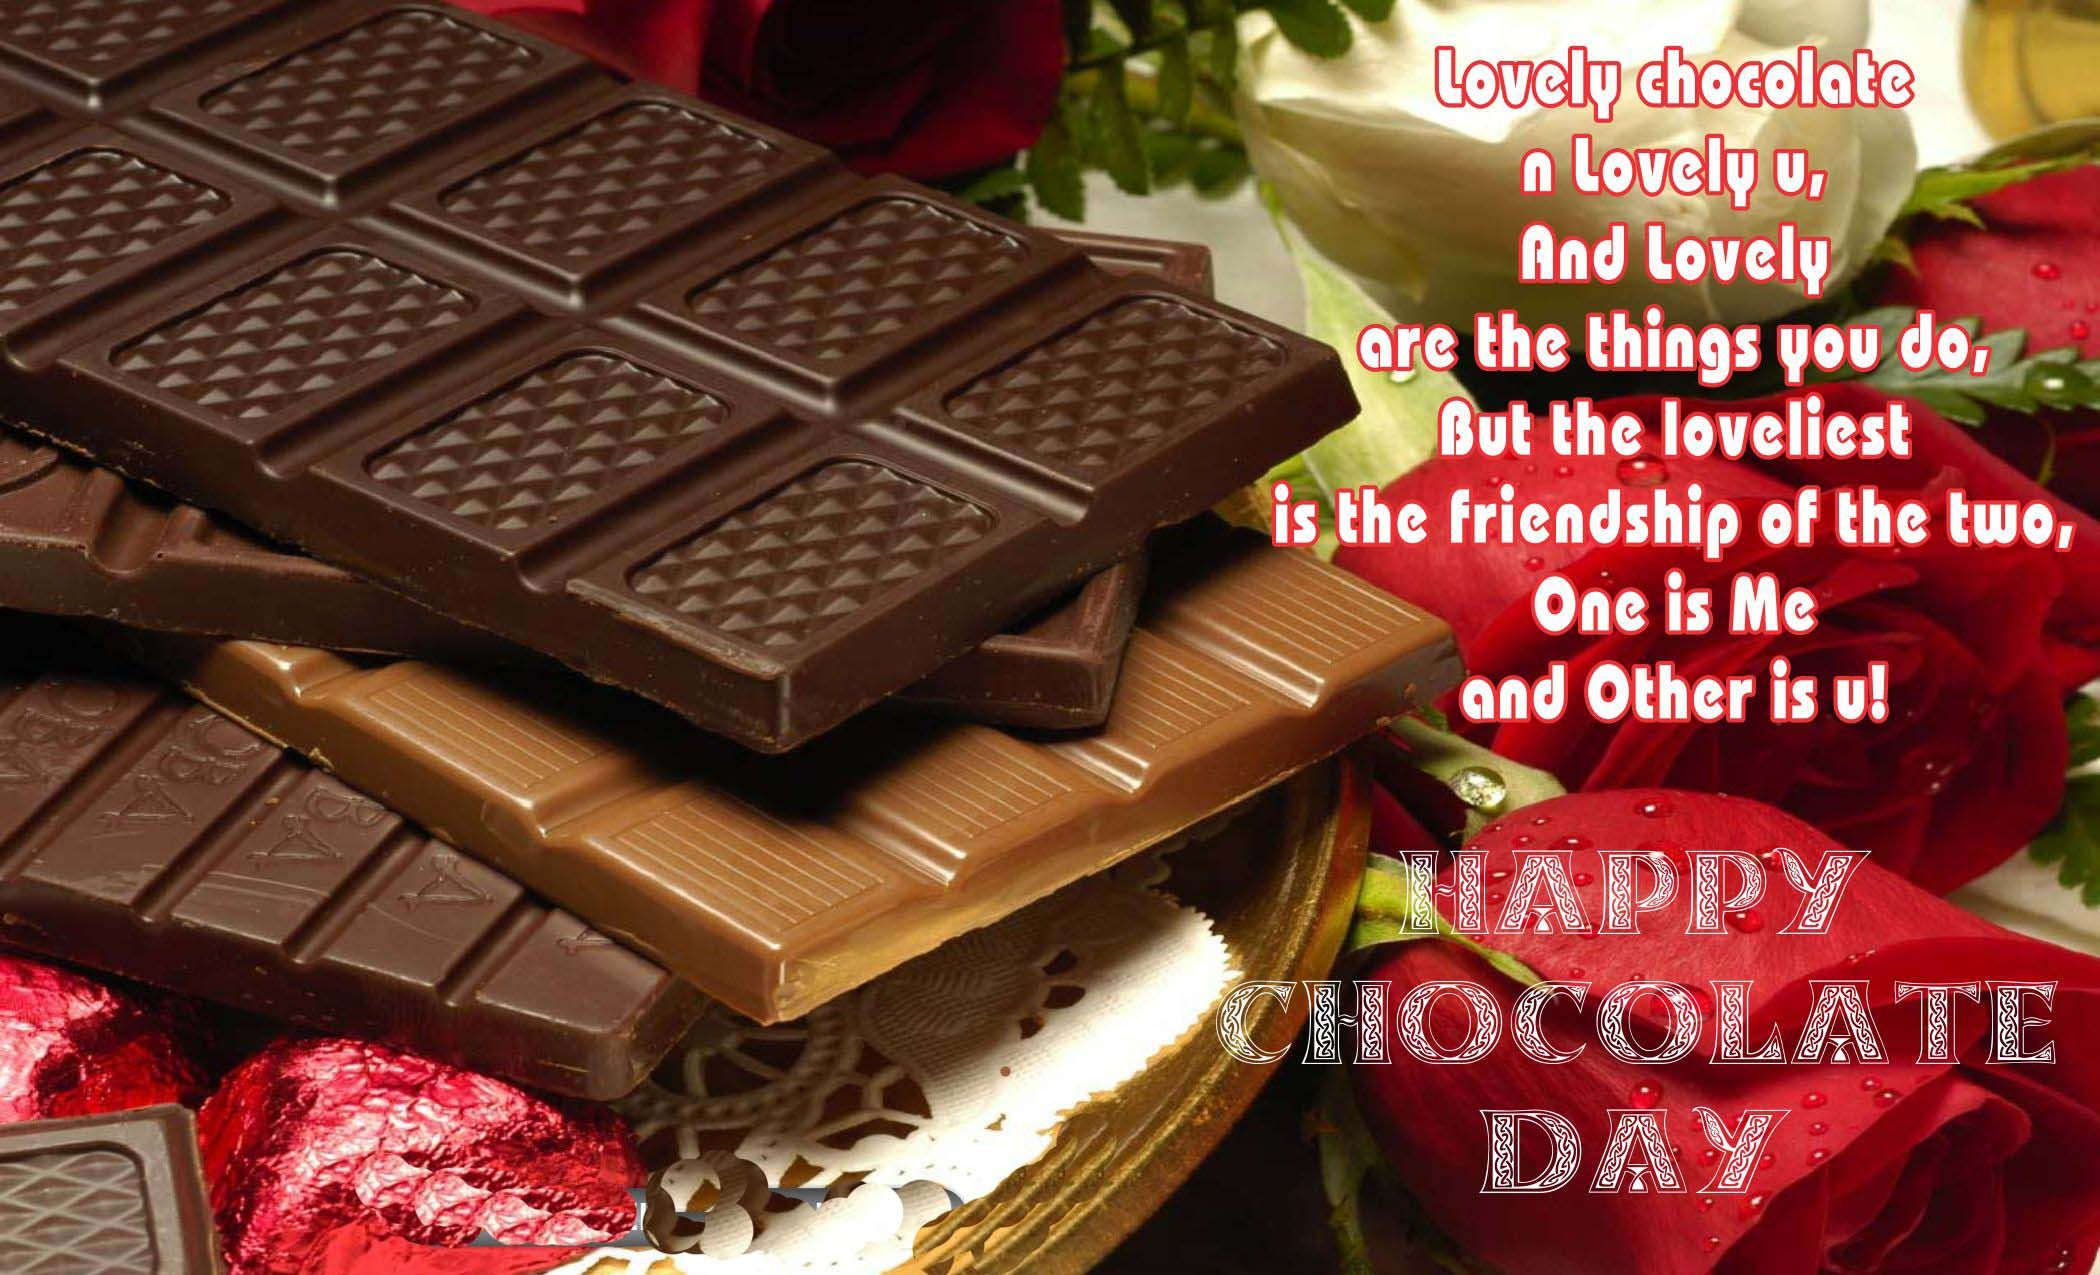 Animated chocolate day imagesWallpapers in 2020 Happy chocolate 2100x1275